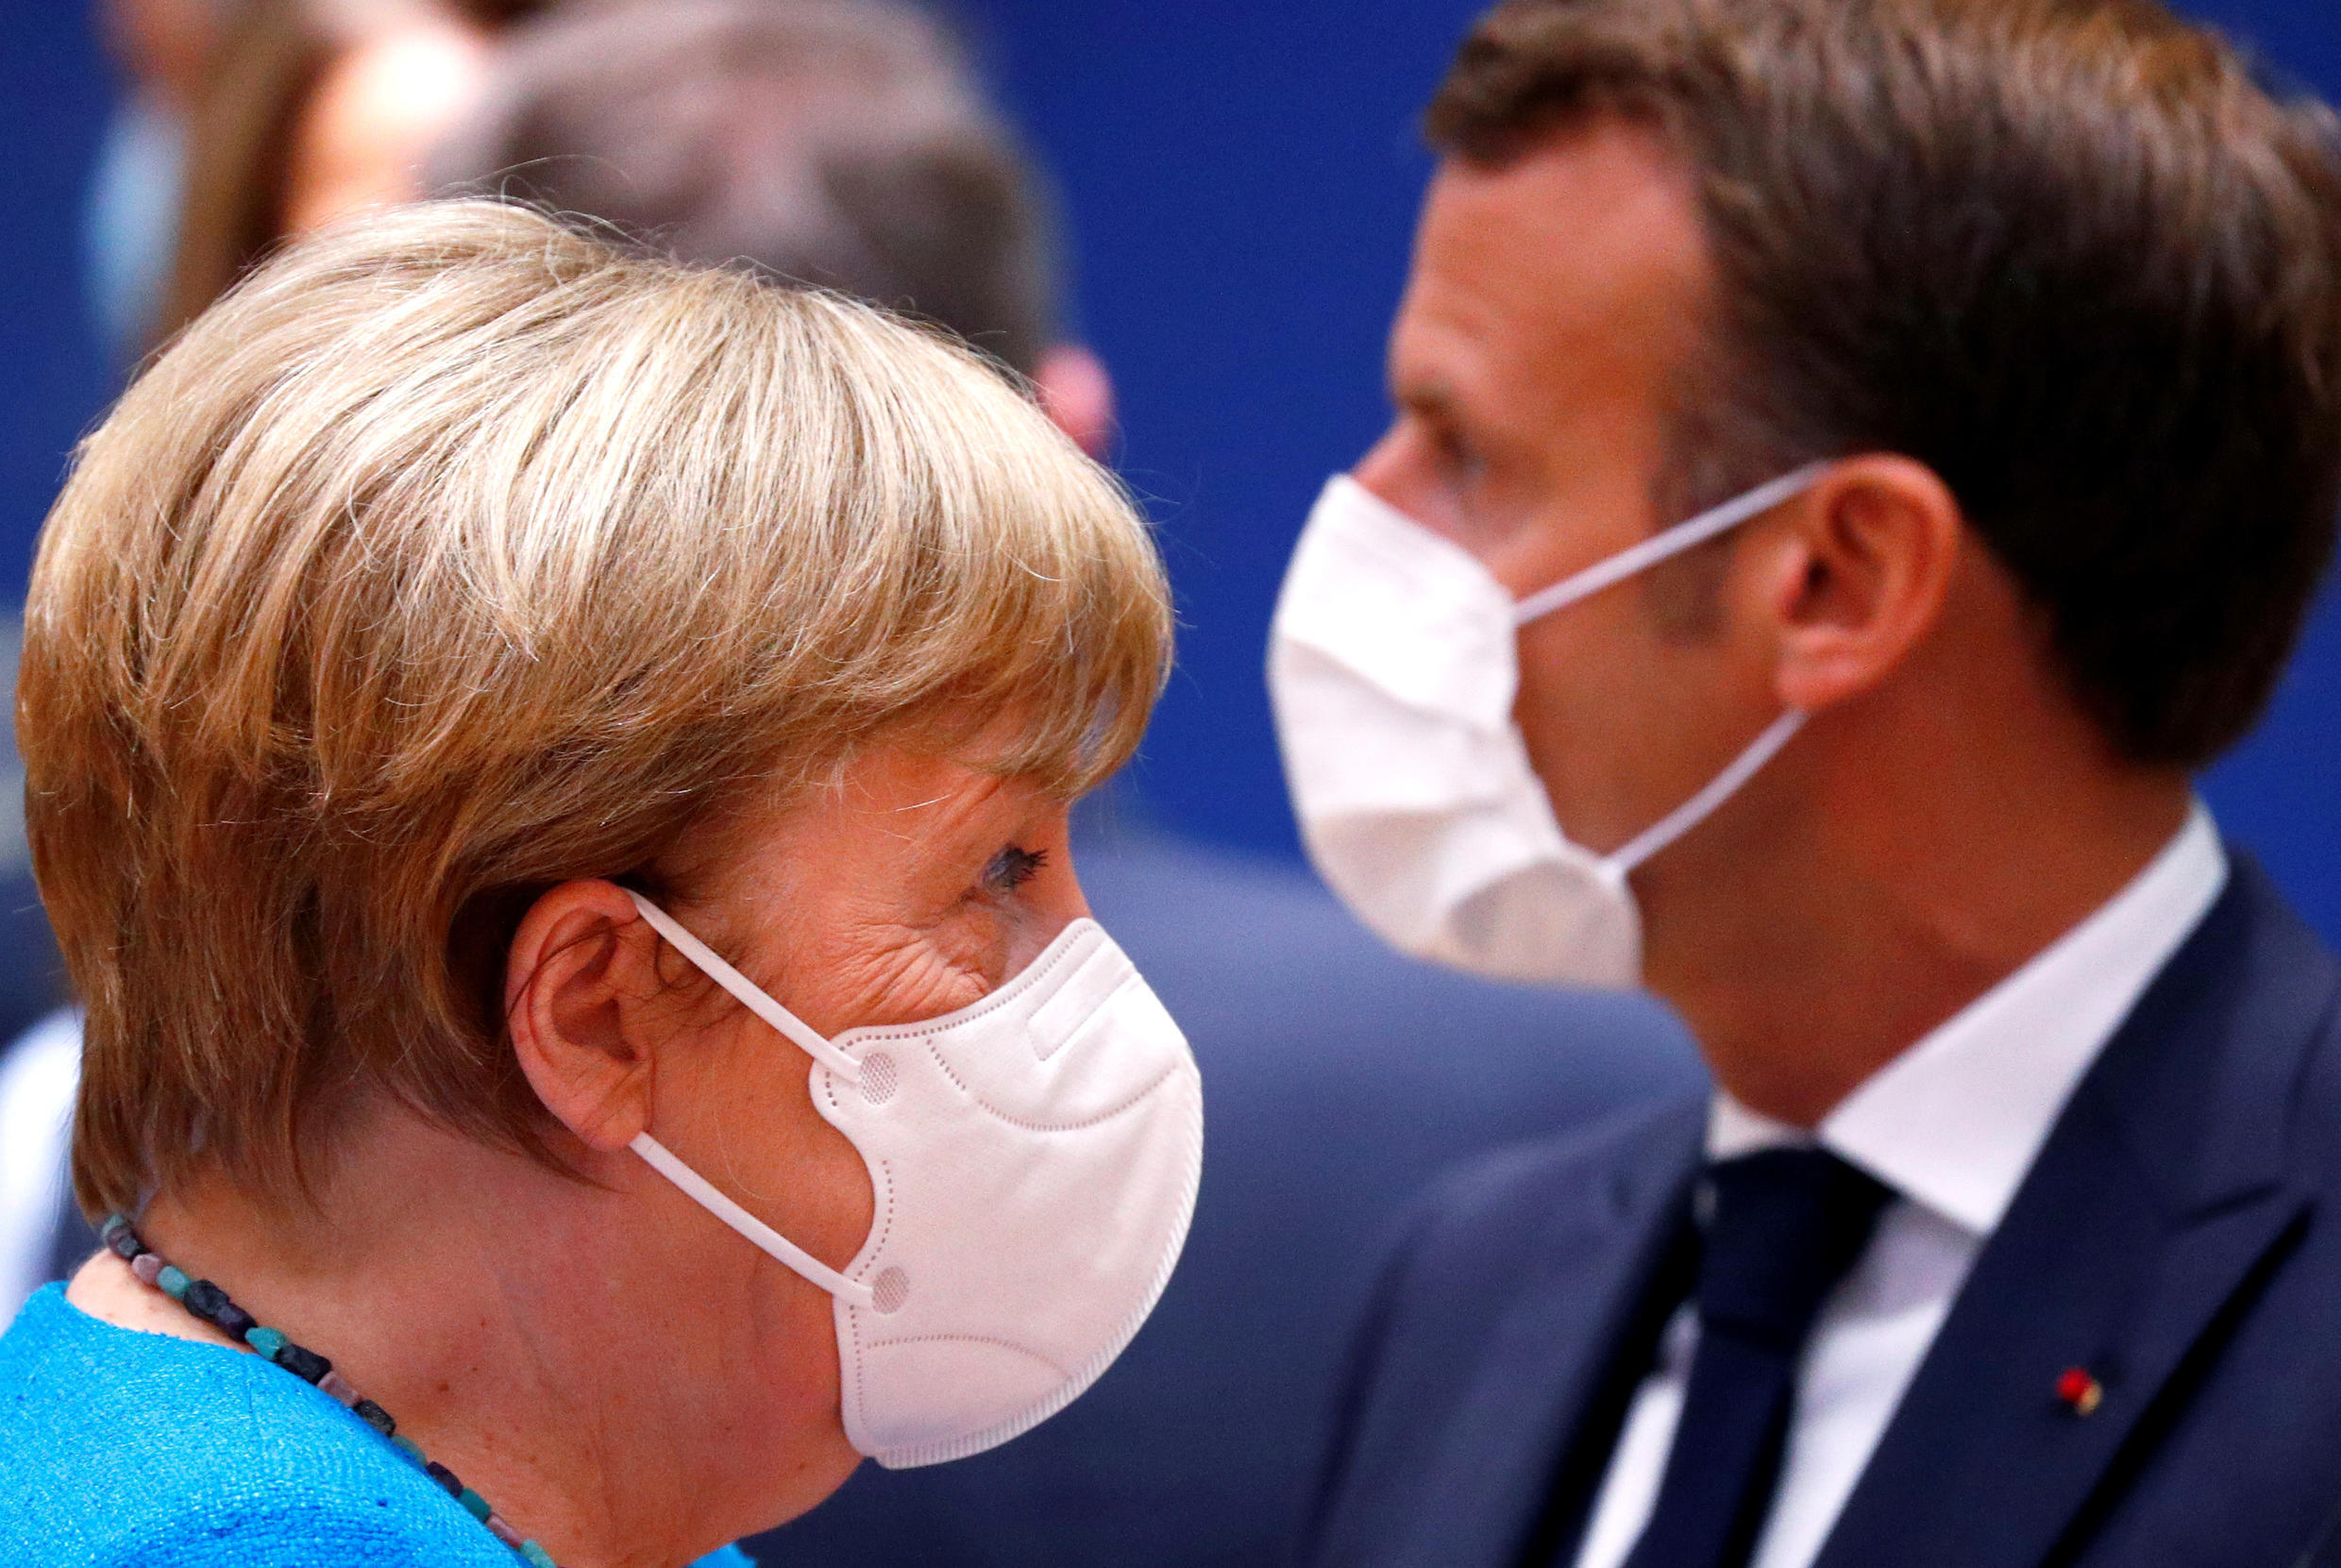 Both France and Germany have seen a sharp spike in Covid-19 cases in summer. (File Photo, July 2020)